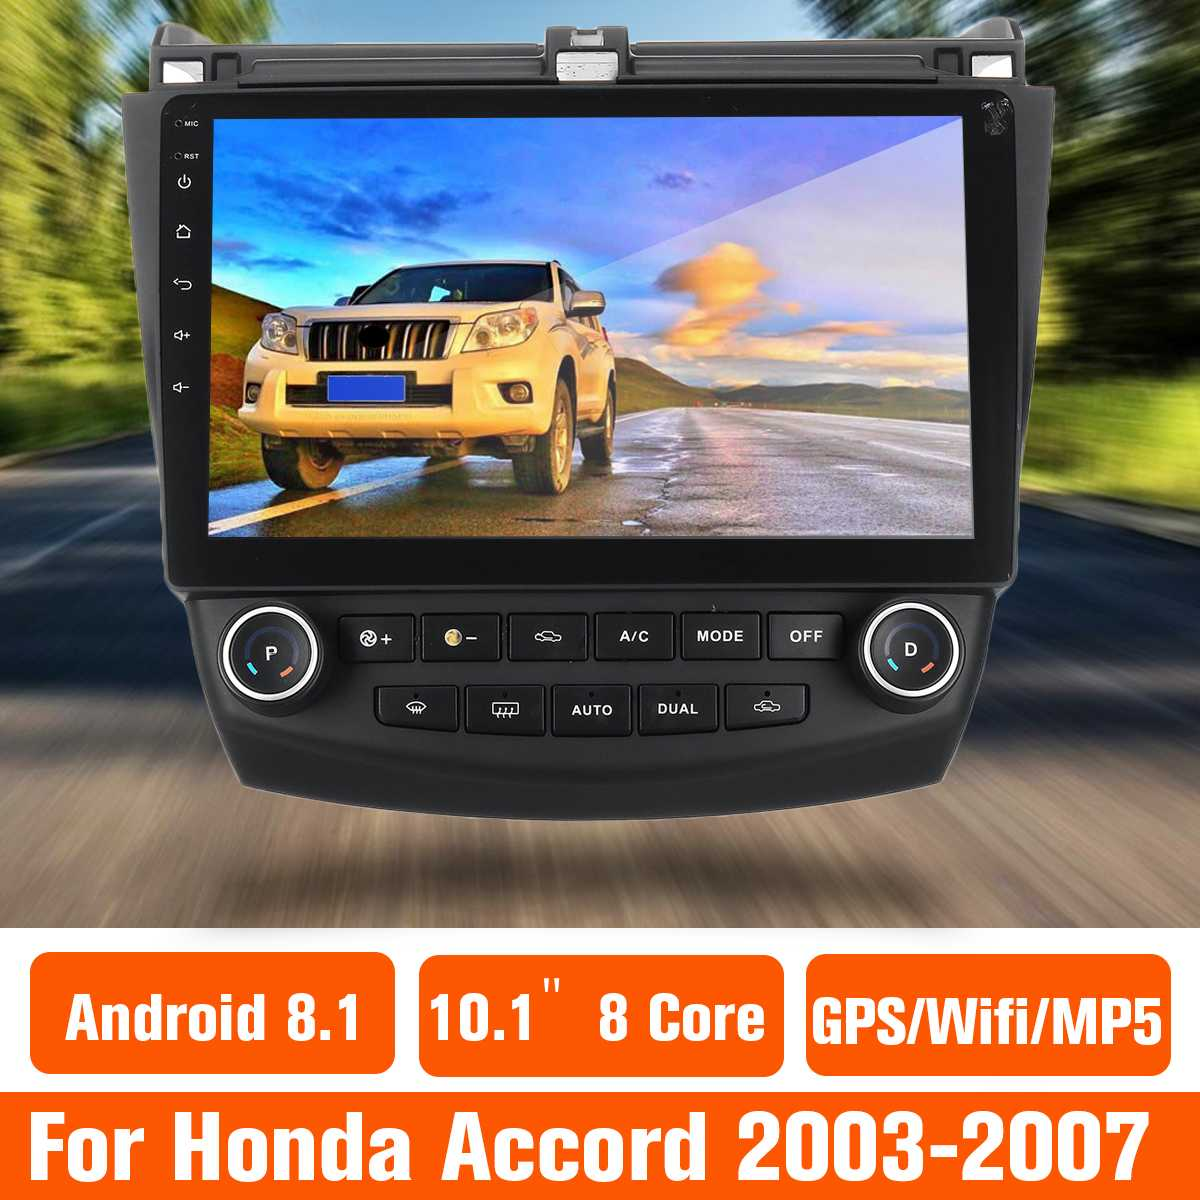 Car Radio Multimedia 10.1 Android 8.0 car dvd audio stereo player Navigation for Honda Accords 7 2003-2007 wifi GPS RDSCar Radio Multimedia 10.1 Android 8.0 car dvd audio stereo player Navigation for Honda Accords 7 2003-2007 wifi GPS RDS